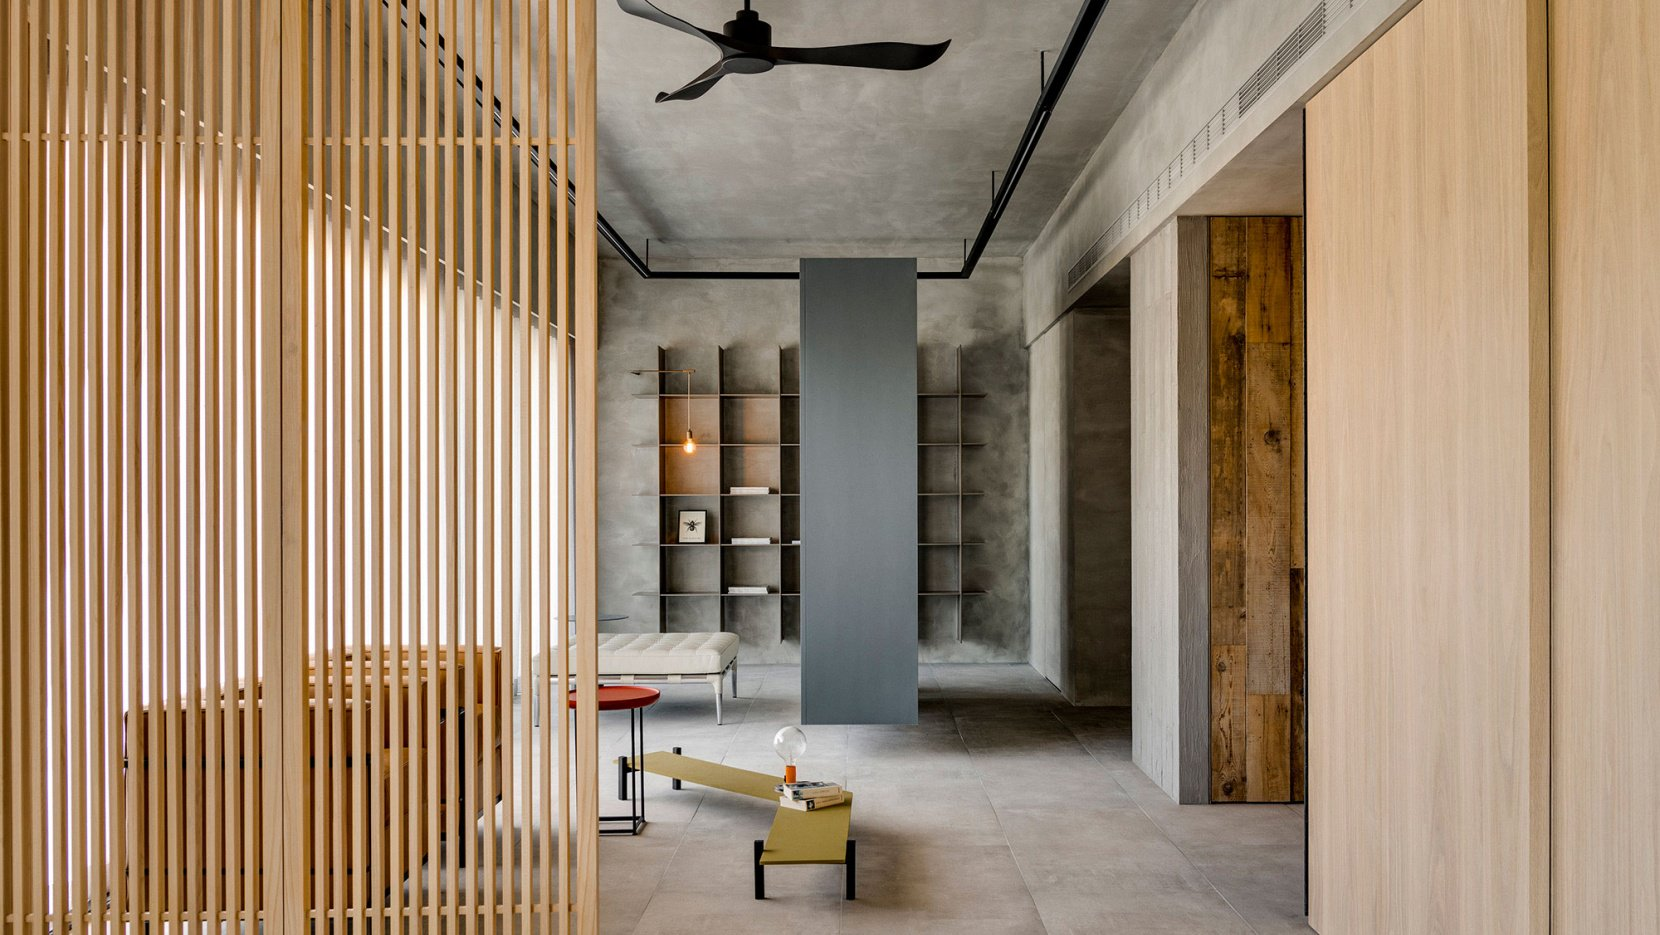 This gorgeous Taiwanese residence is done with wabi sabi aesthetics and traditional Japanese features